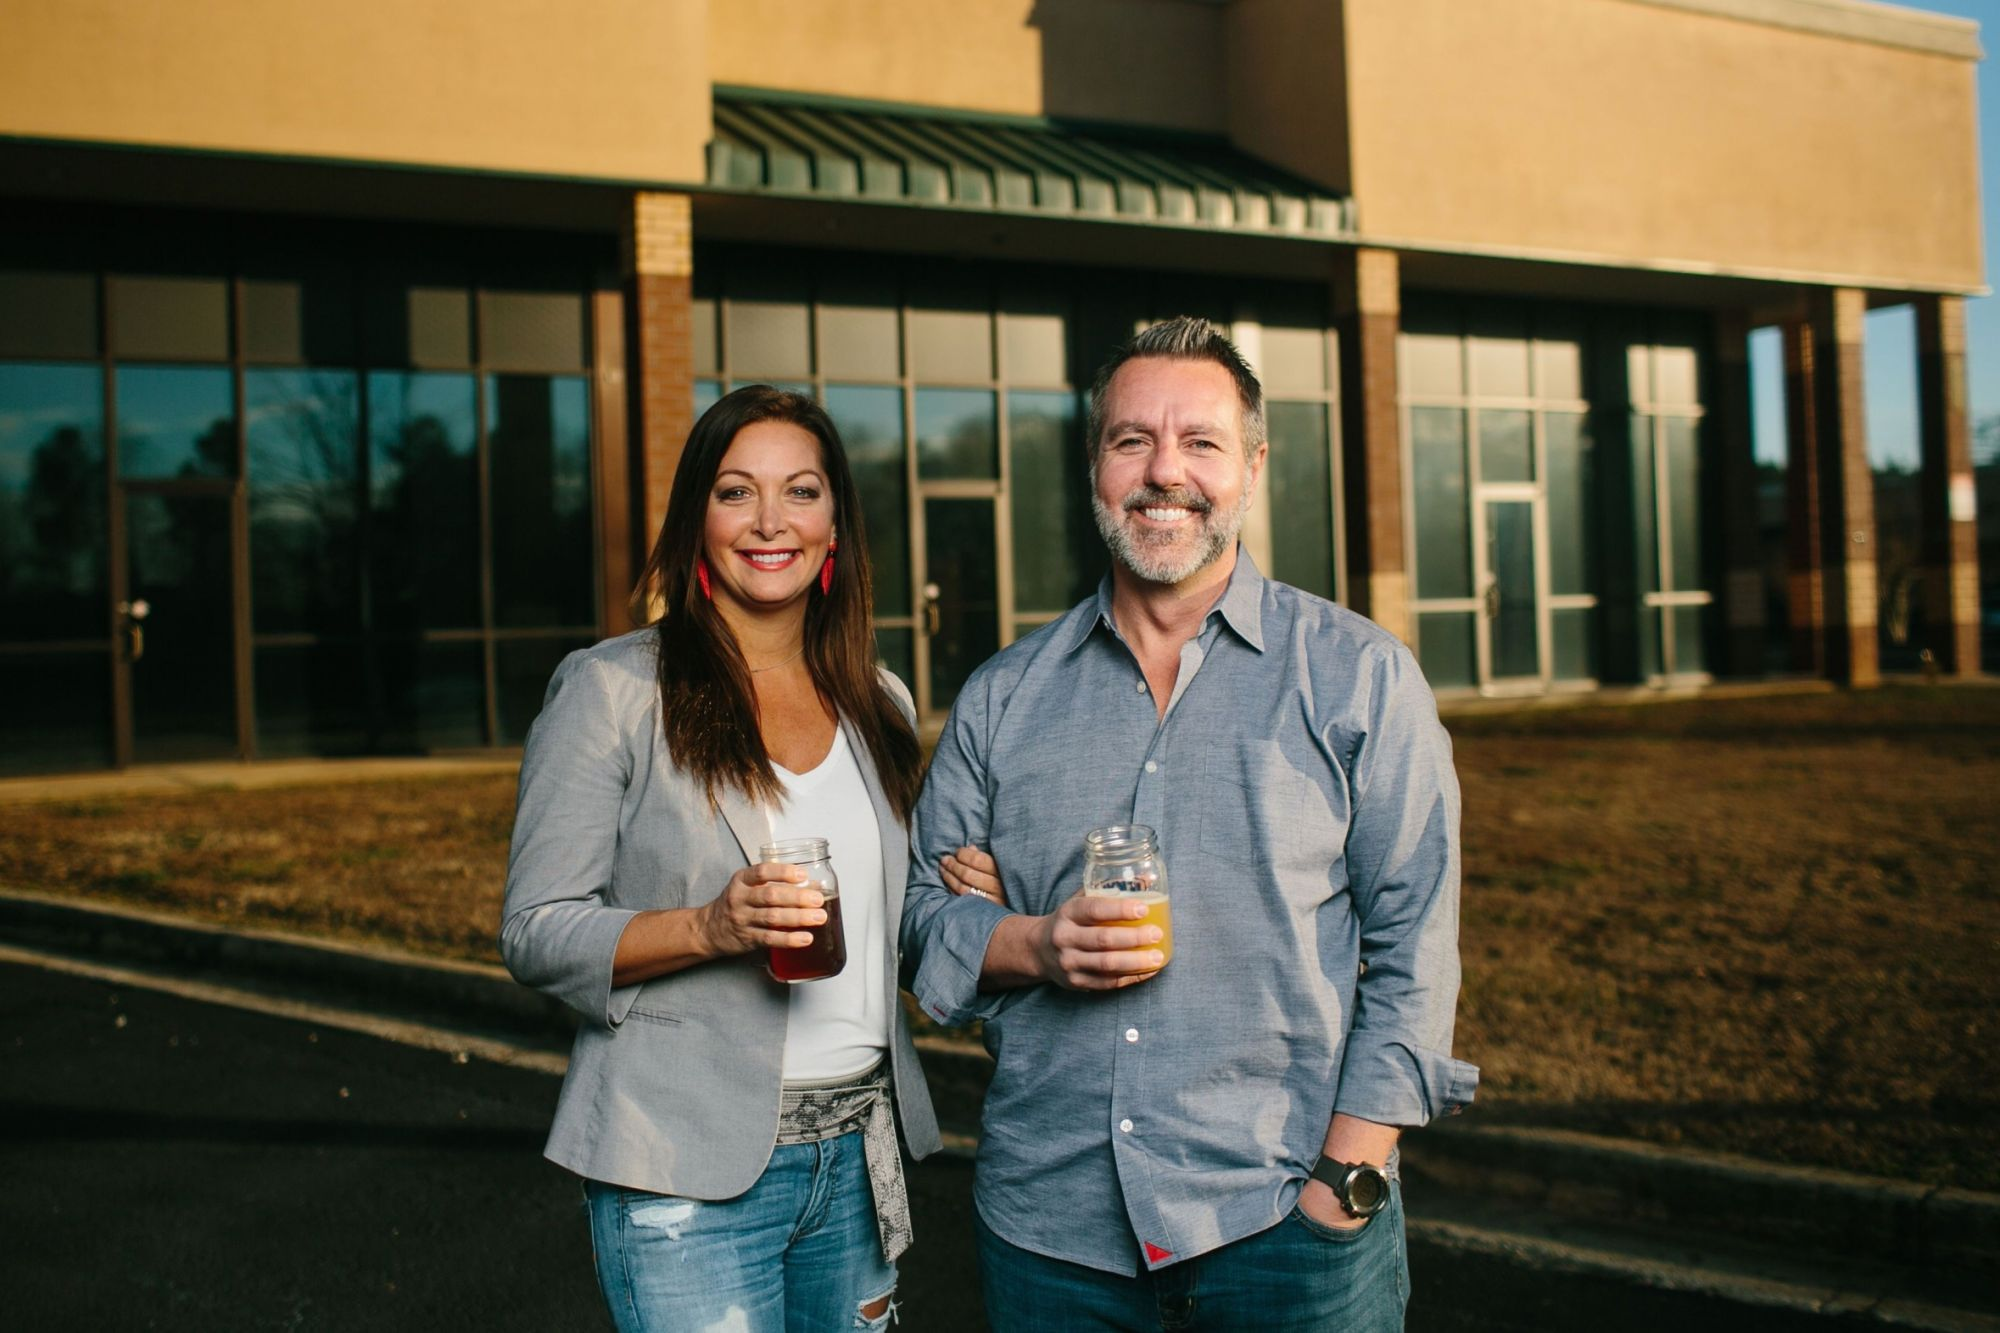 5 Secrets for Maintaining a Successful Business (and Marriage)